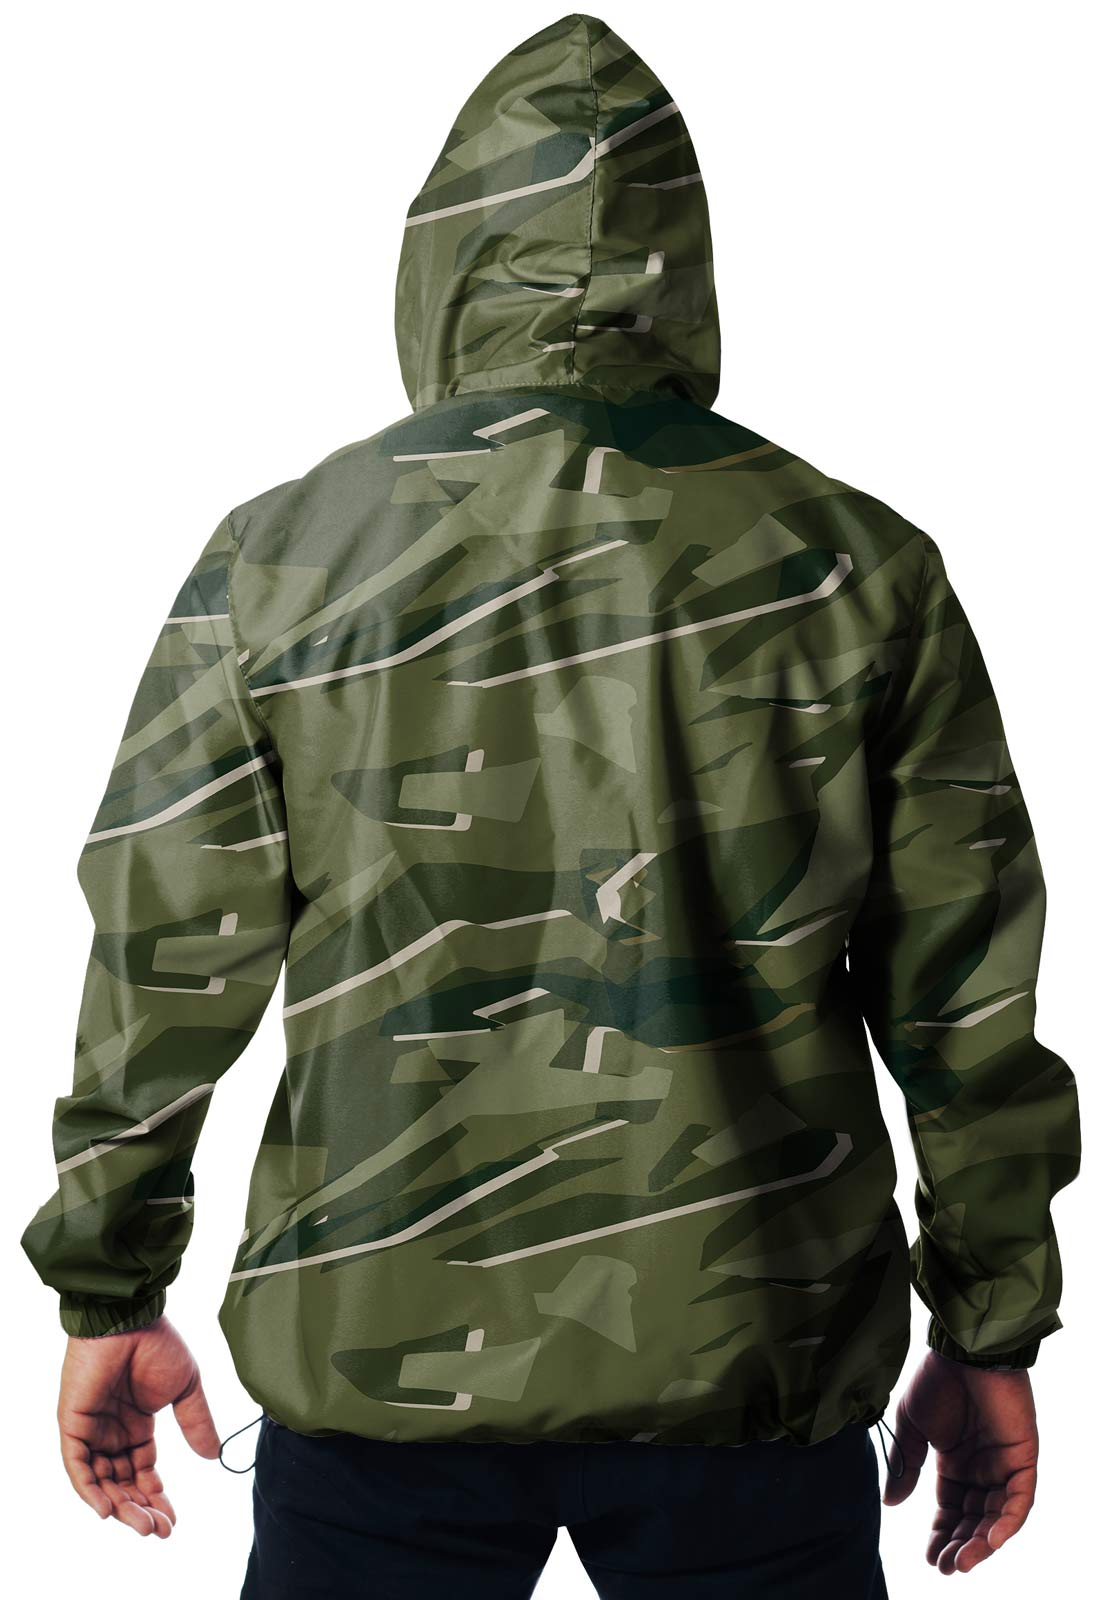 JAQUETA CORTA VENTO CAMUFLADA PARABELLUM TROPICAL MASCULINA  - REAL HUNTER OUTDOORS